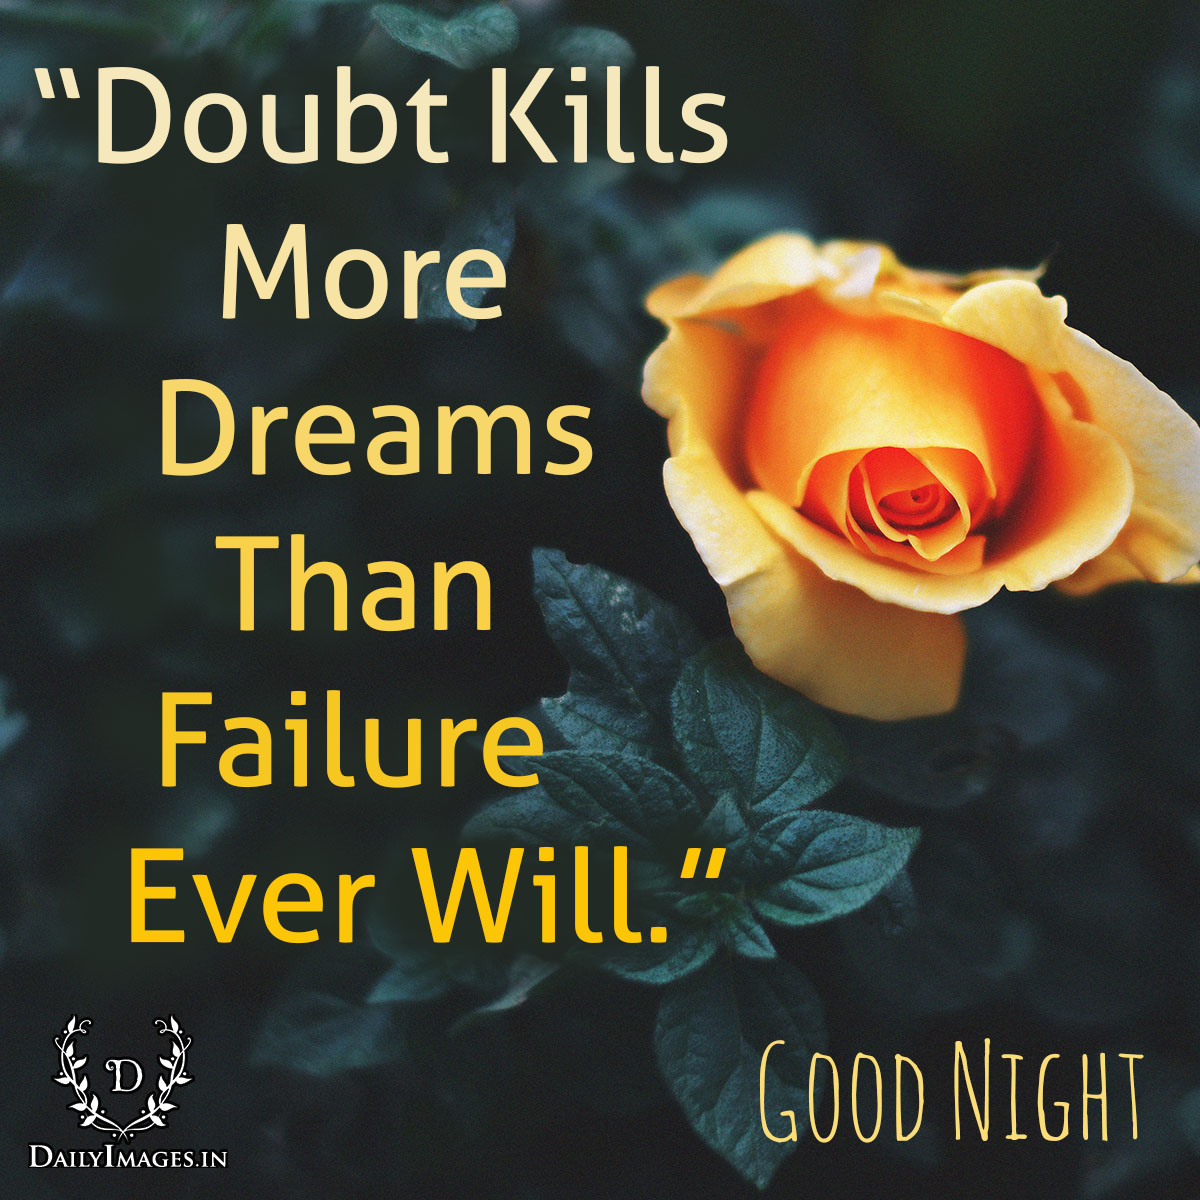 Inspirational Quotes Motivation: Doubt Kills More Dreams Than Failure Ever Will: Good Night